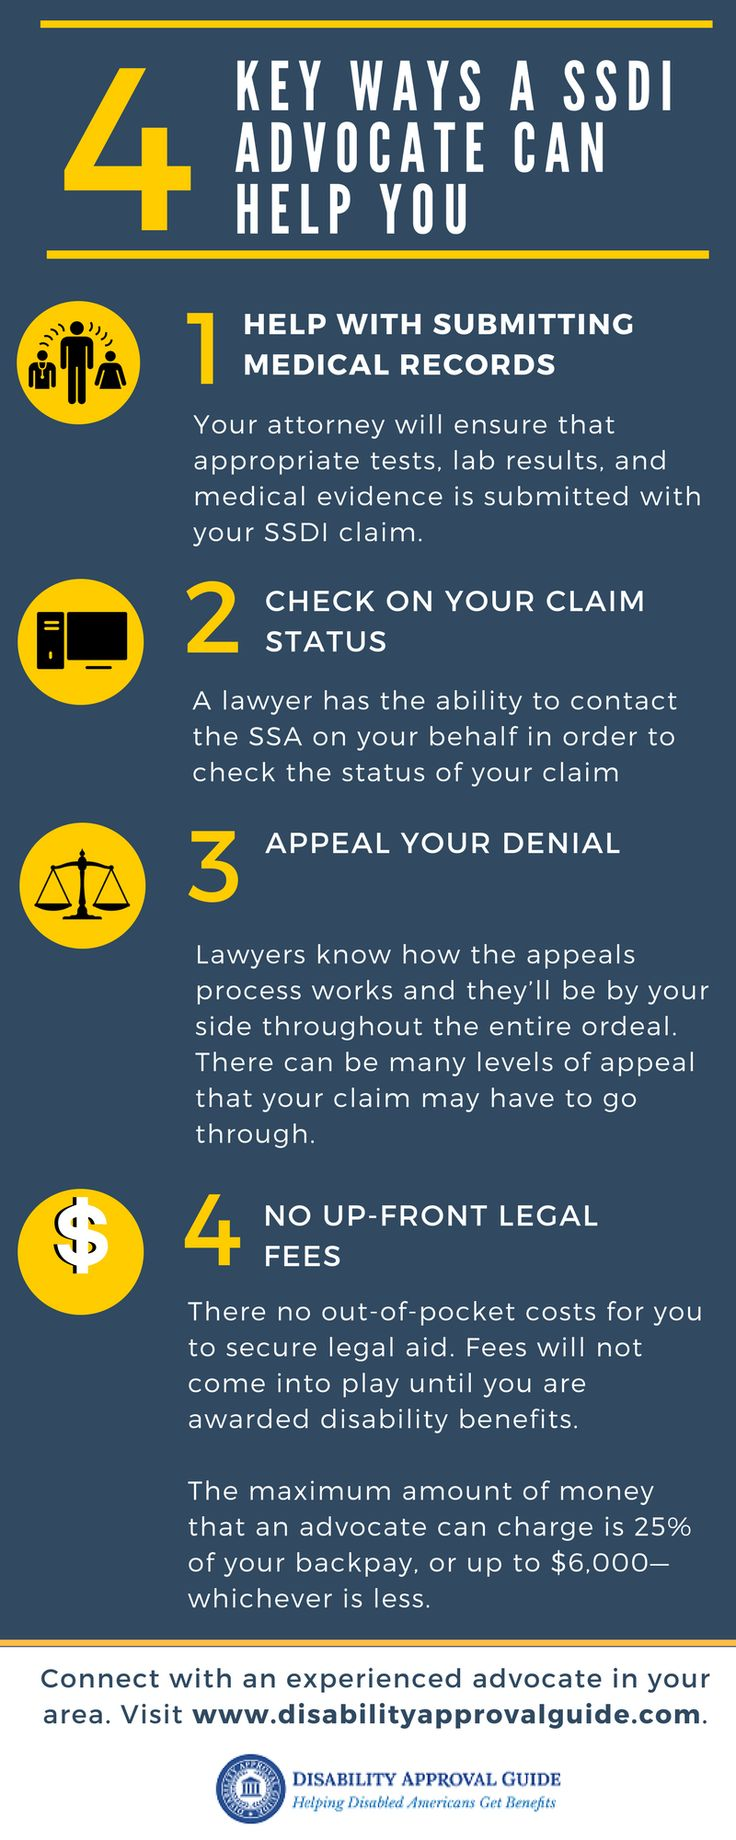 Filing your SSD claim with the help of an advocate/attorney can potentially increase your chance of initial approval and shorten your time to receive benefits. They will know exactly how to complete the forms properly and collect the required documentation to potentially shorten the SSD approval process. Learn more about how the help of an attorney/advocate can potentially improve the time to receive benefits simply request a FREE, no-obligation consultation. Click on the link for more.